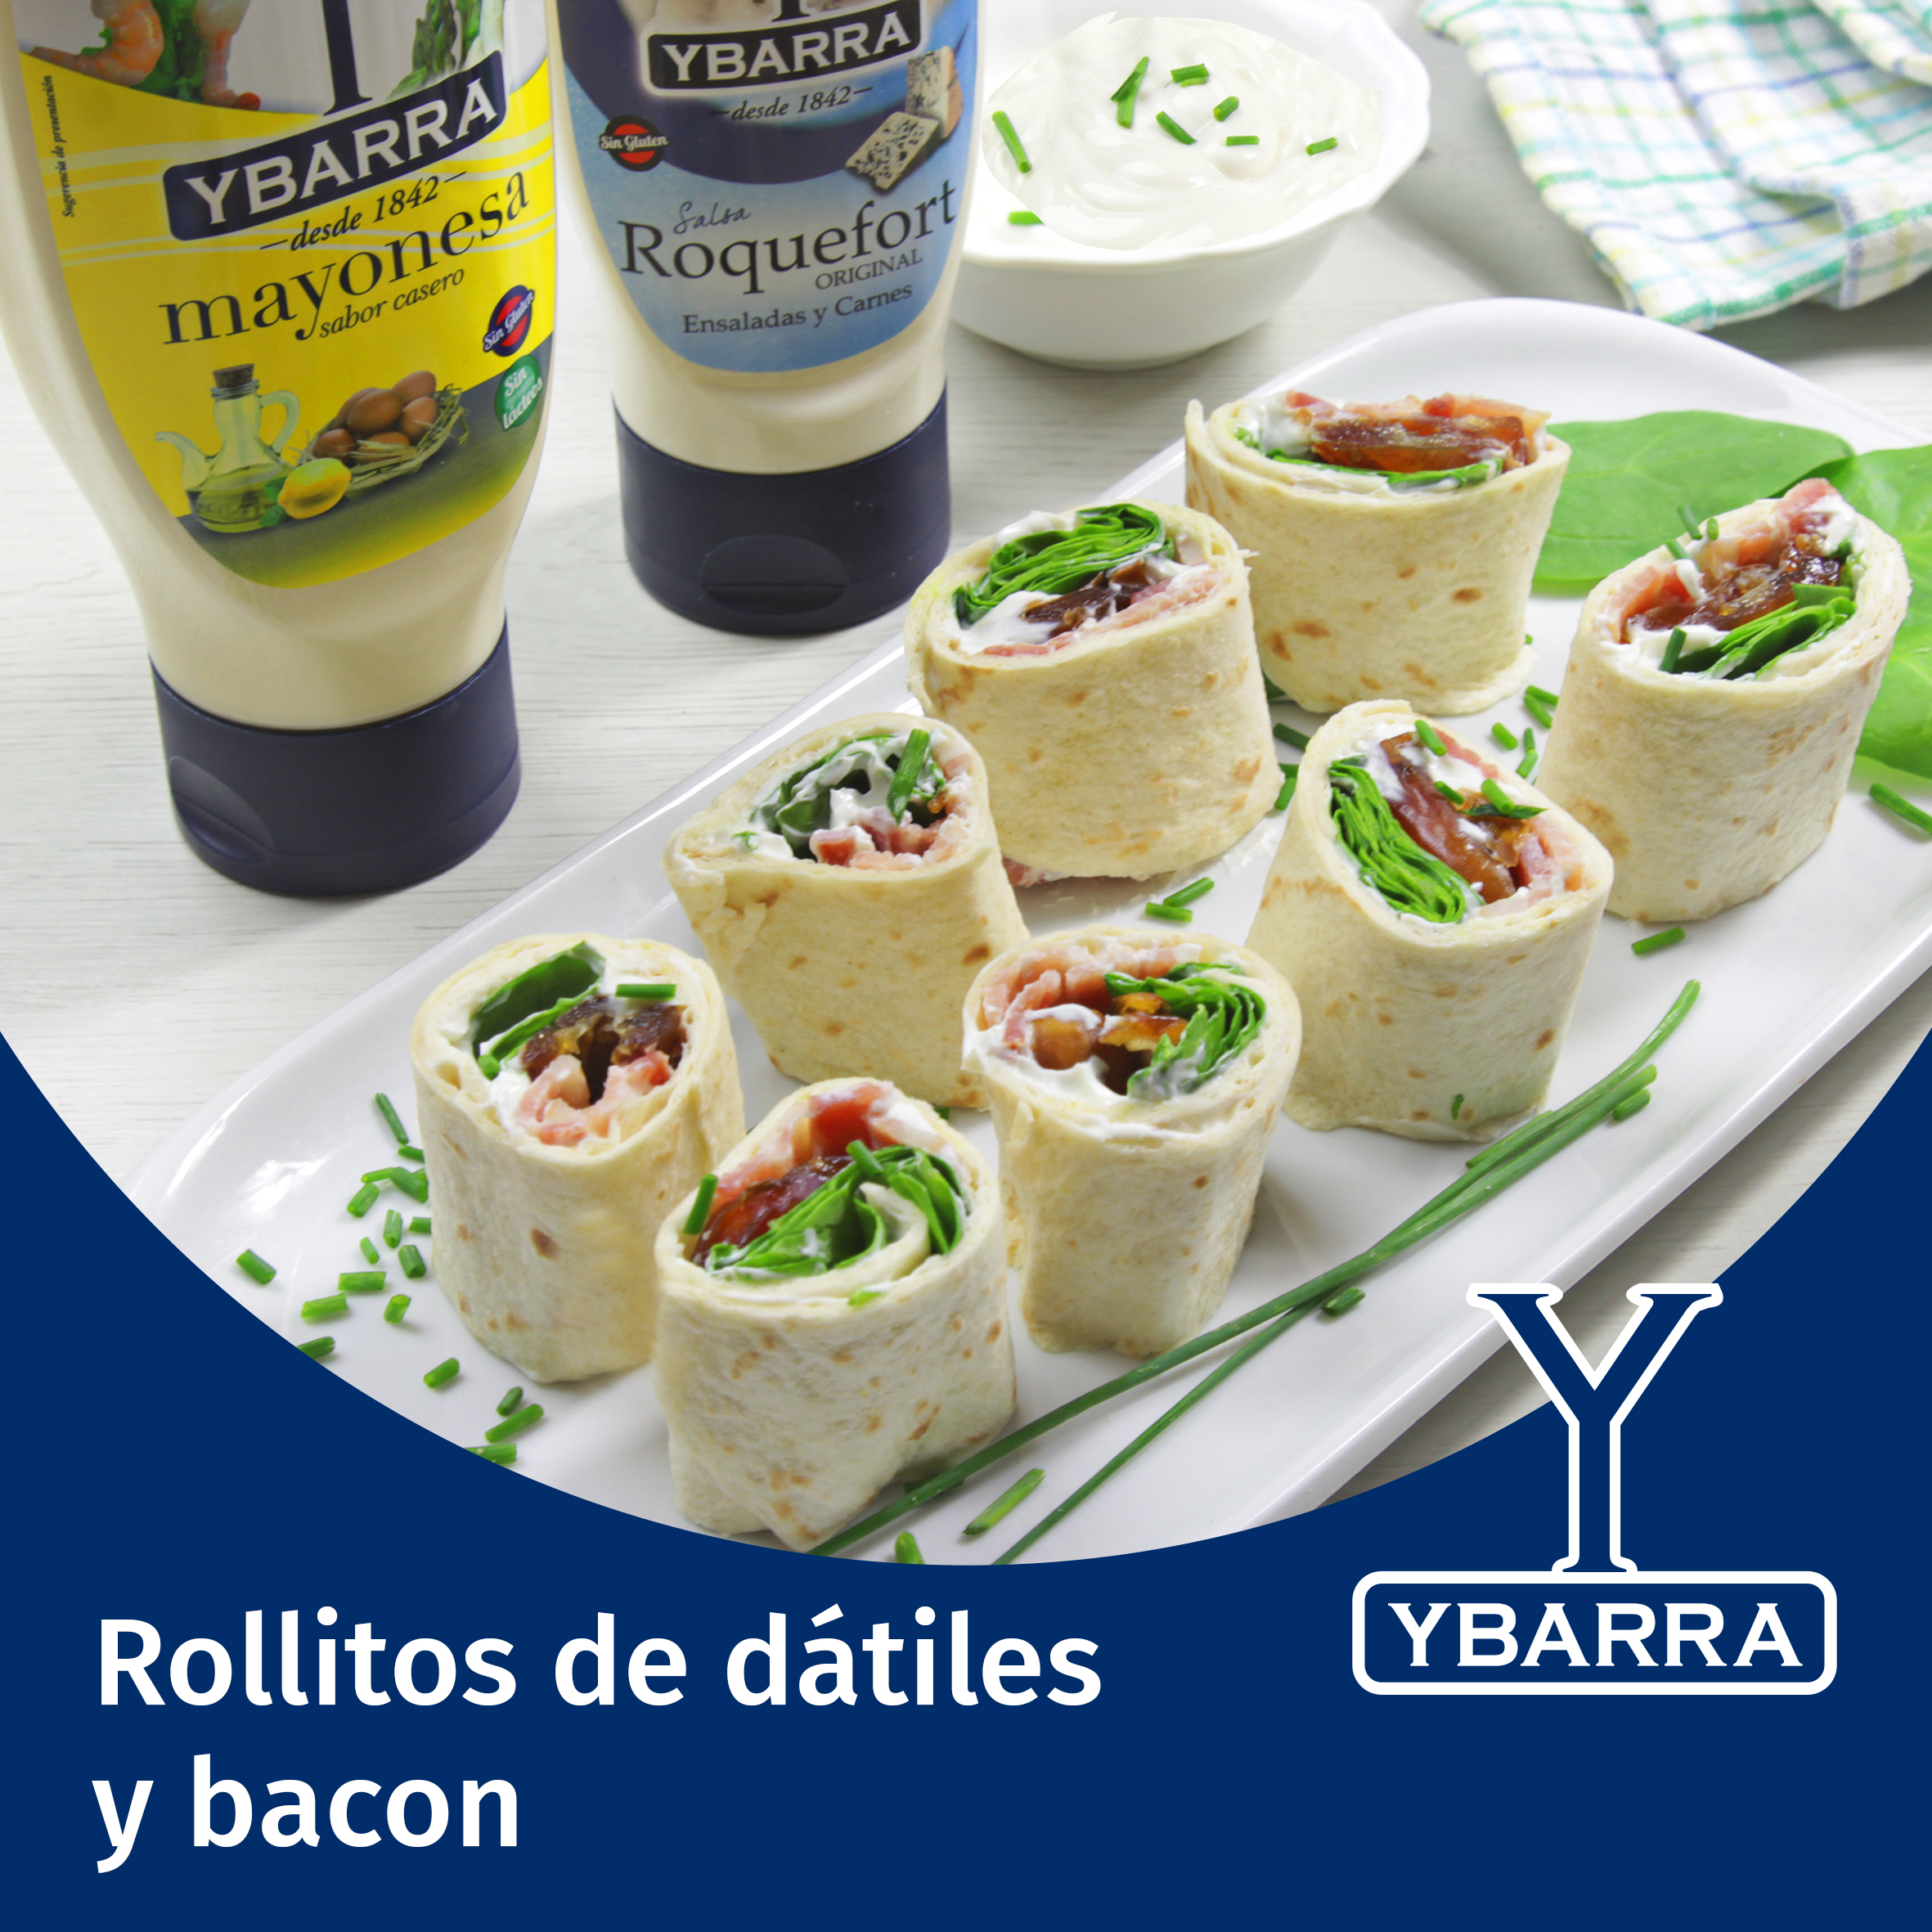 Rollitos de dátiles y bacon